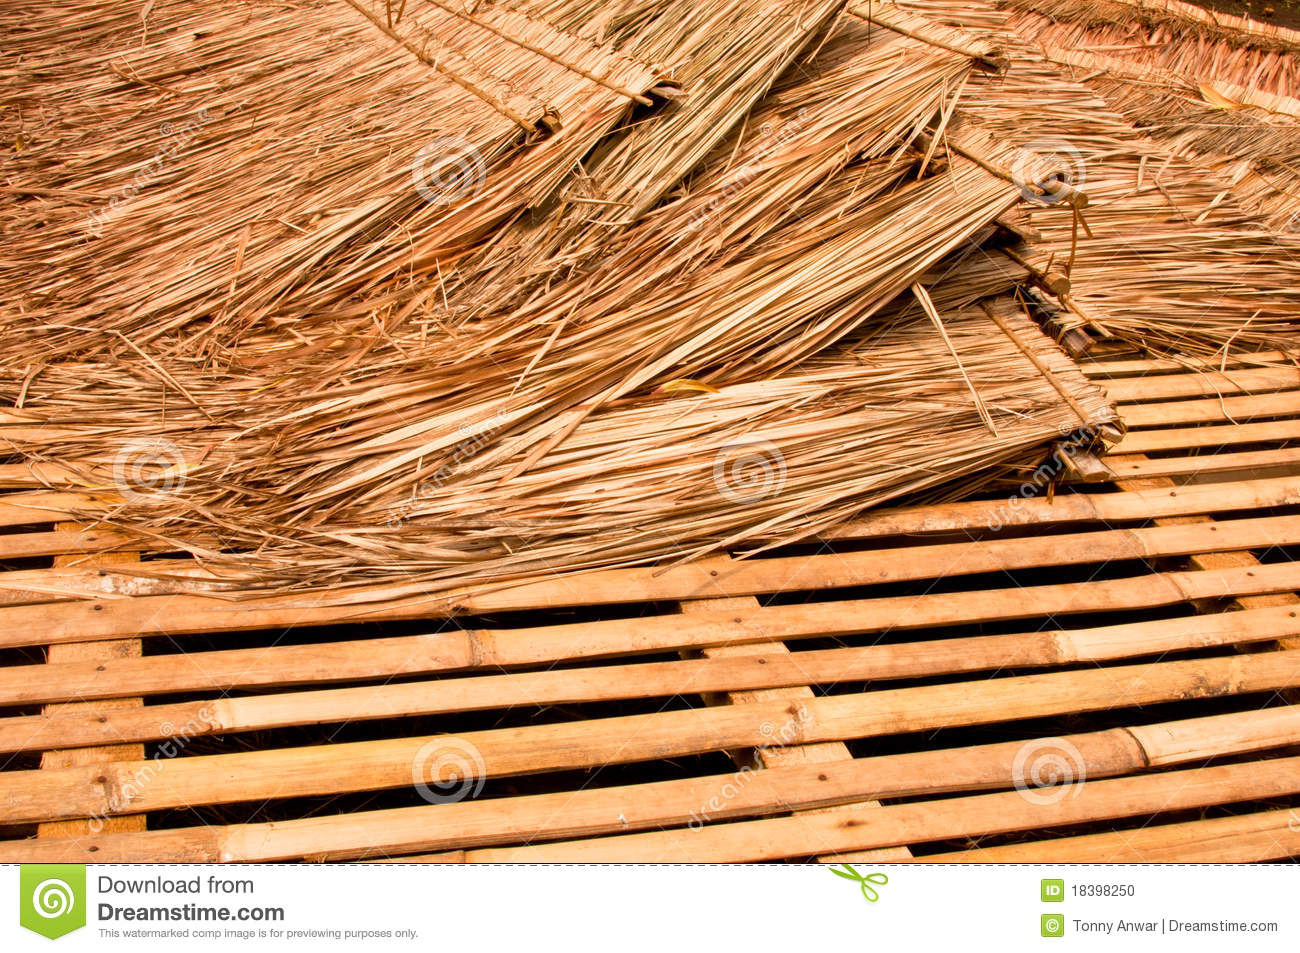 Straw material stock photo image 18398250 for Bamboo roofing materials